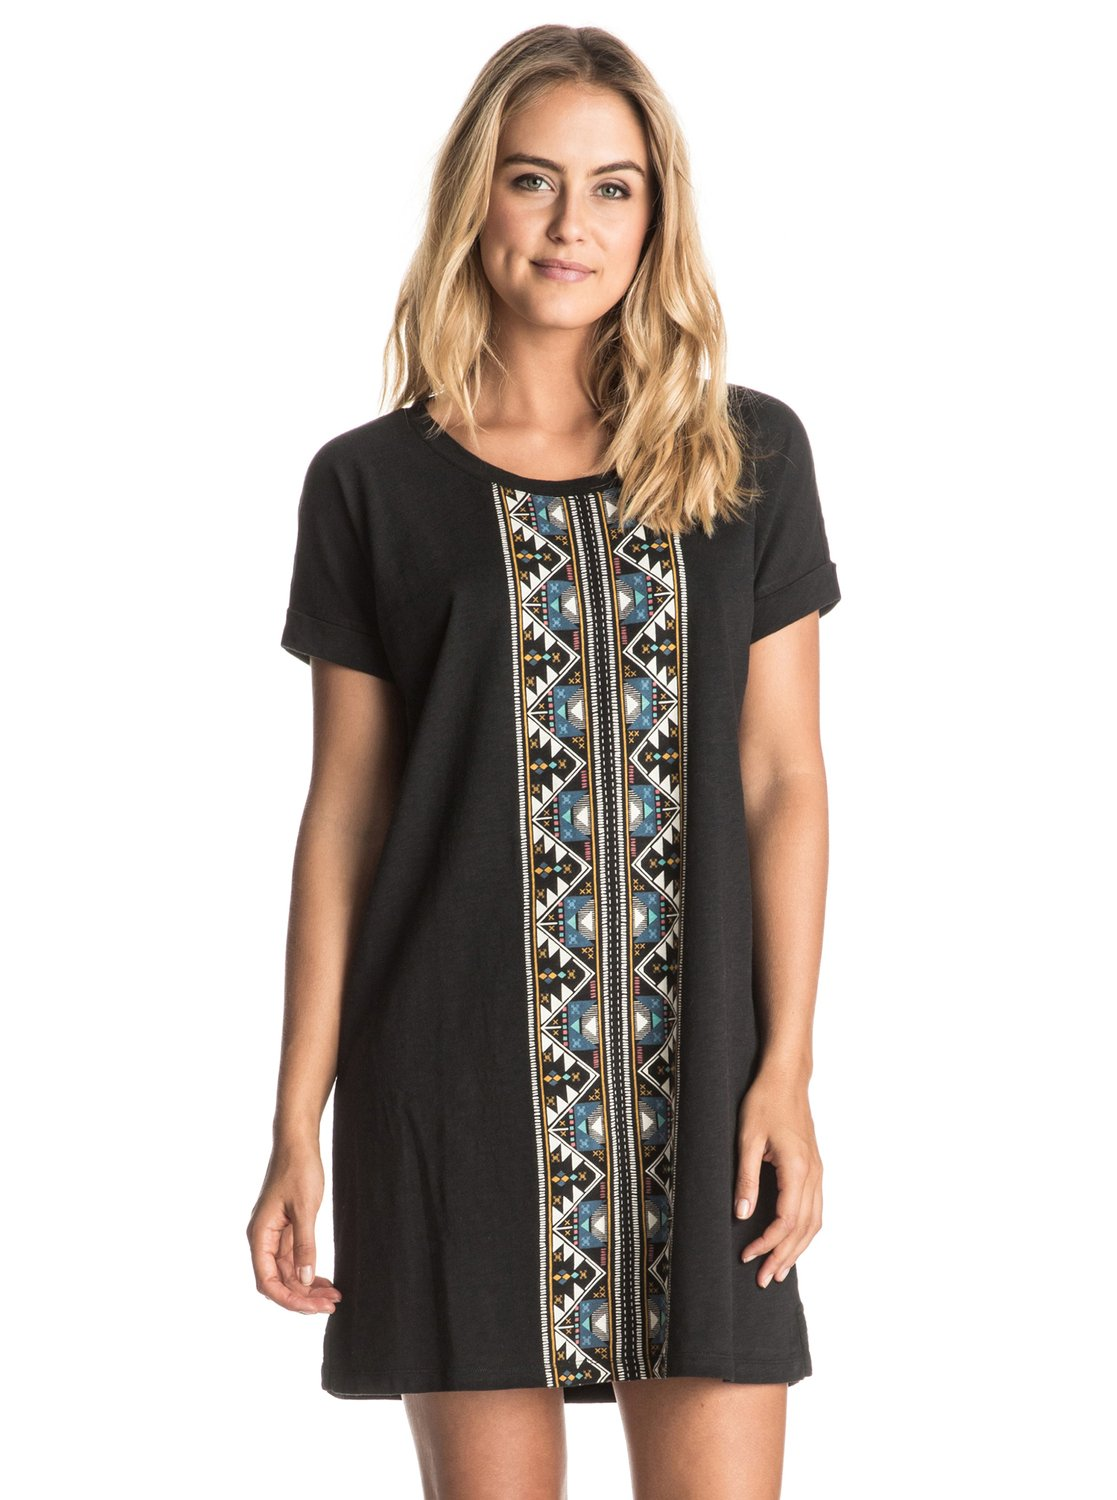 For The Roses - Robe tee-shirt pour Femme - Roxy